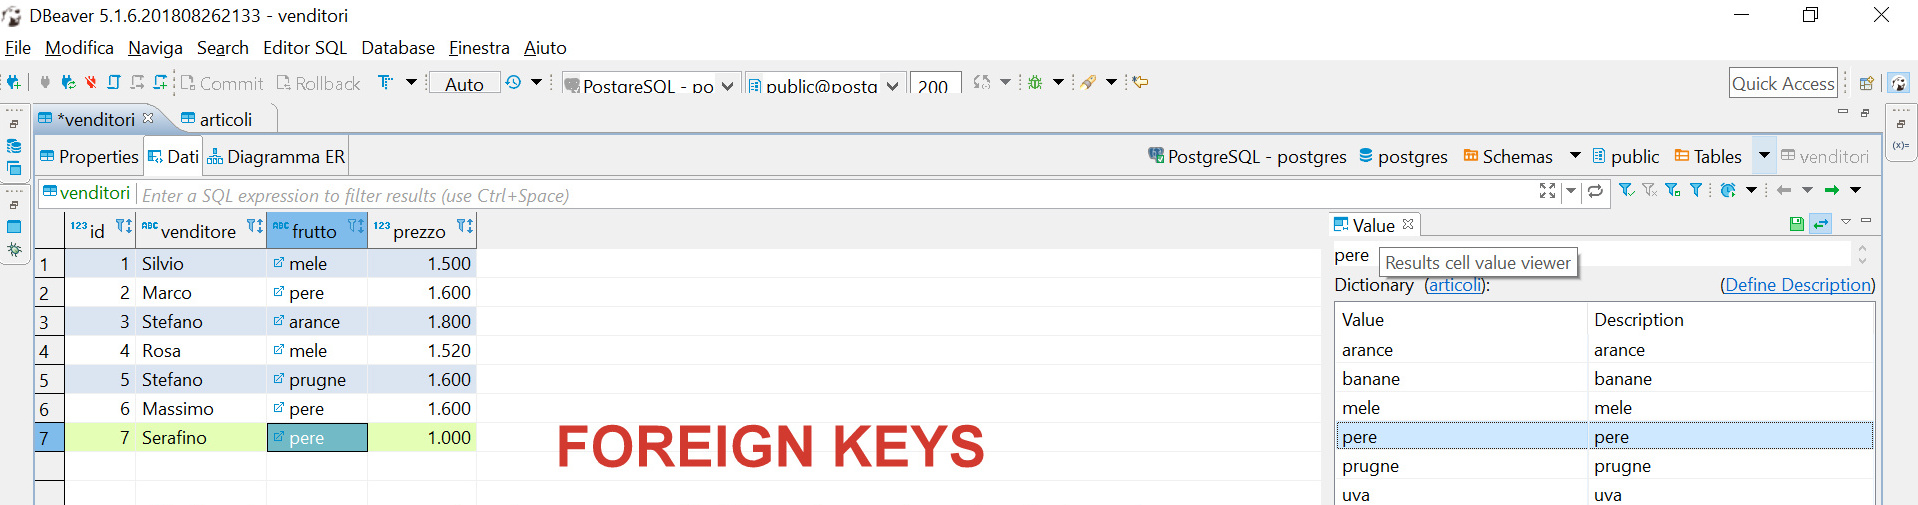 Foreign keys: drop-down menu to select correct values (feature